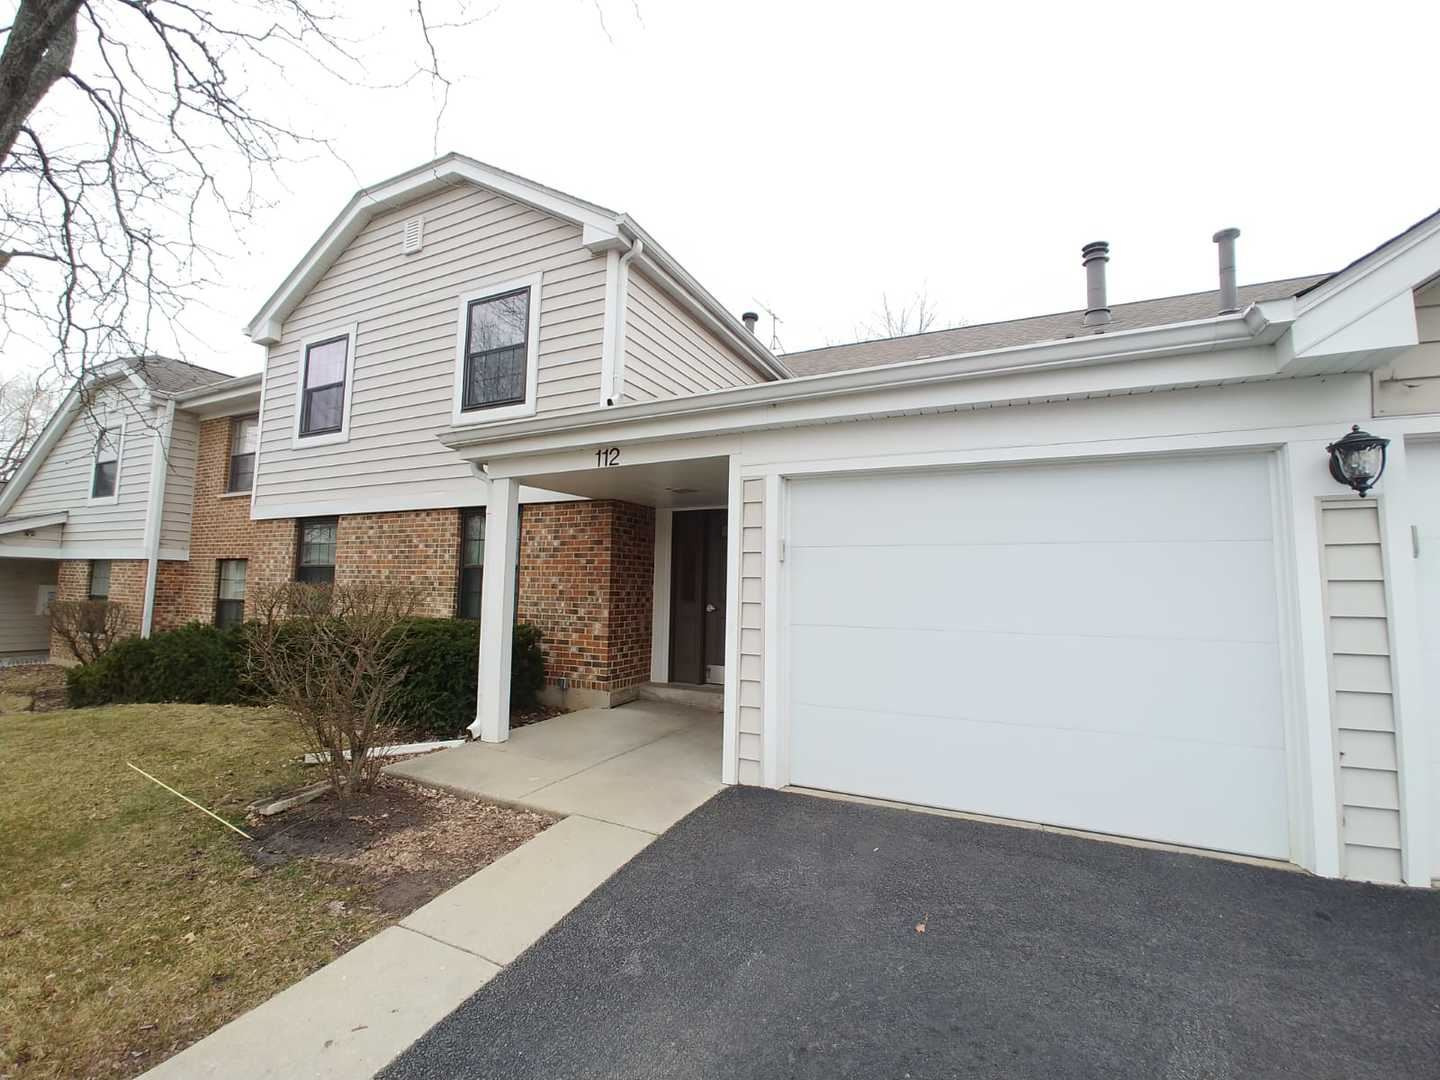 112 SUSSEX Circle #D1, Schaumburg, IL 60193 - #: 10668510